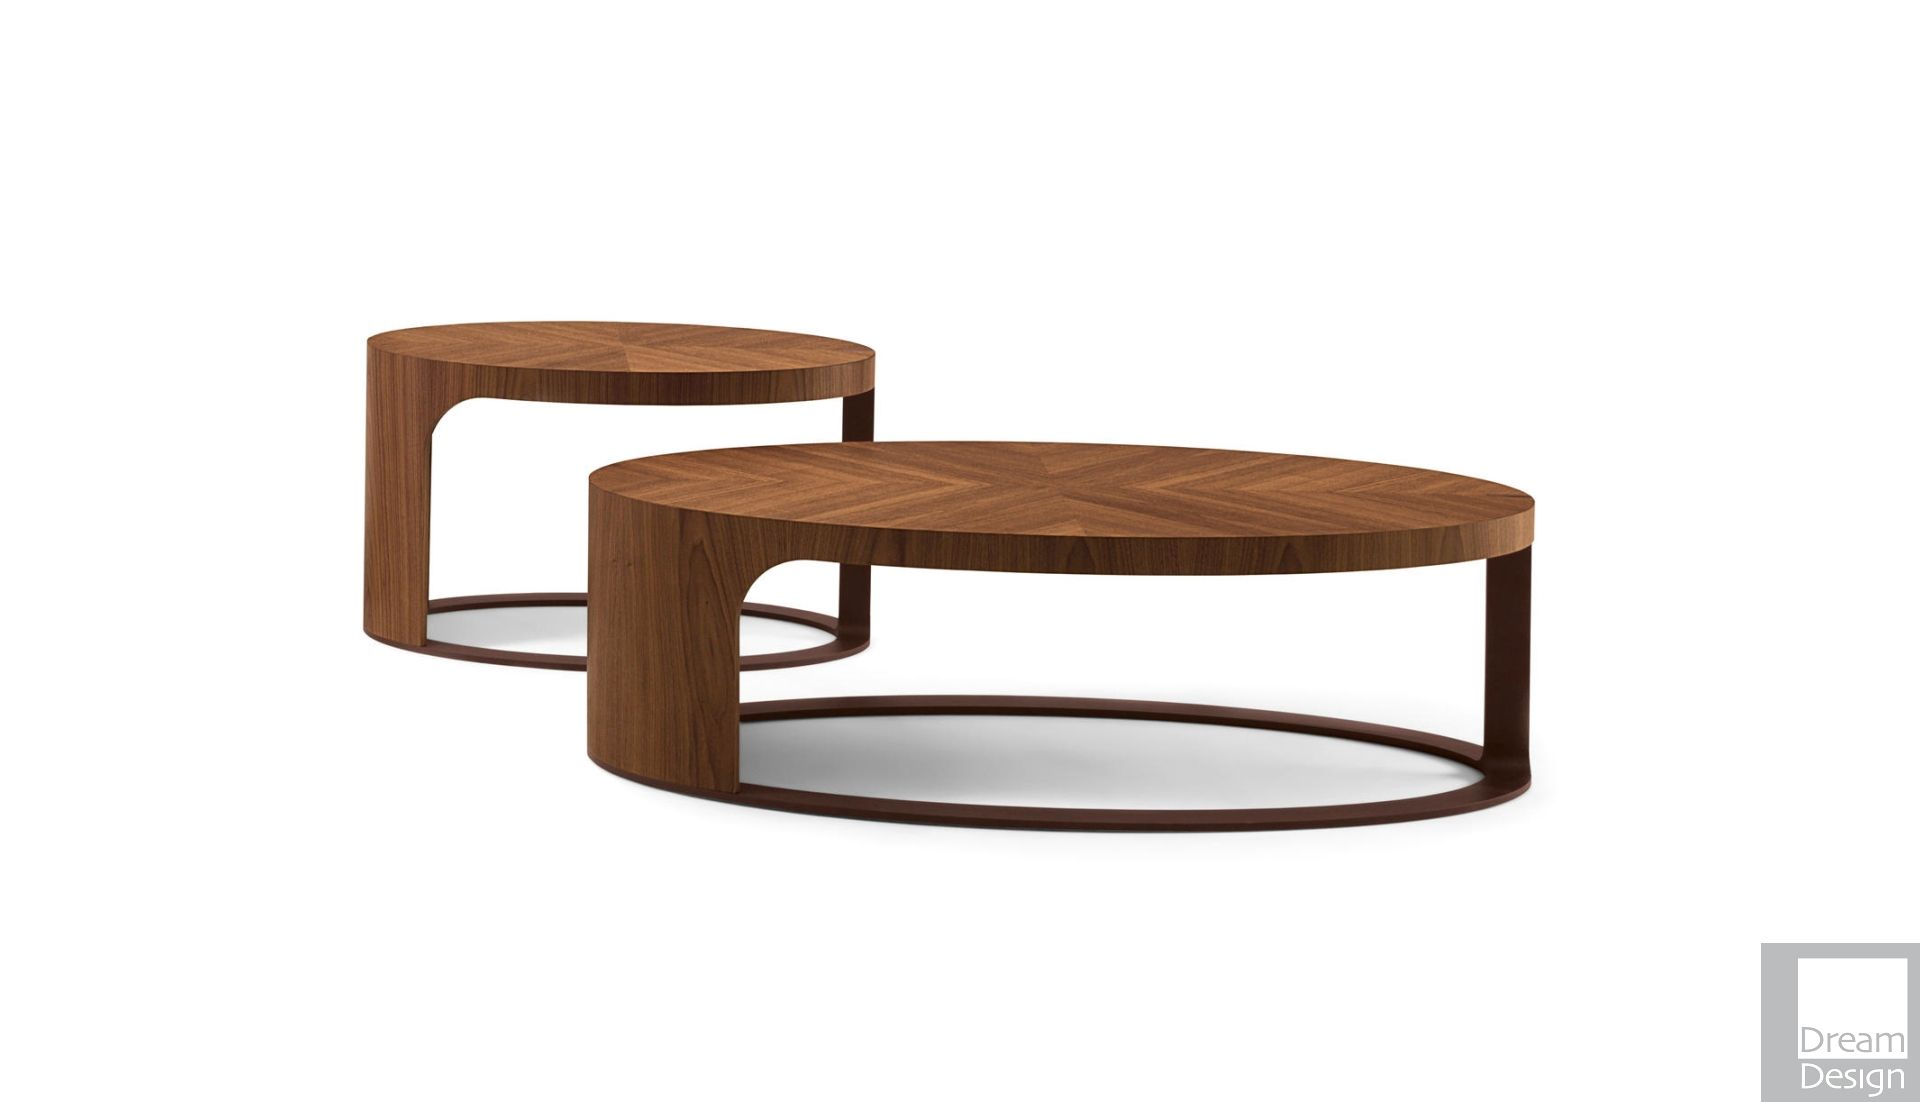 Ling Coffee Table in 2020 Table, Wood, metal